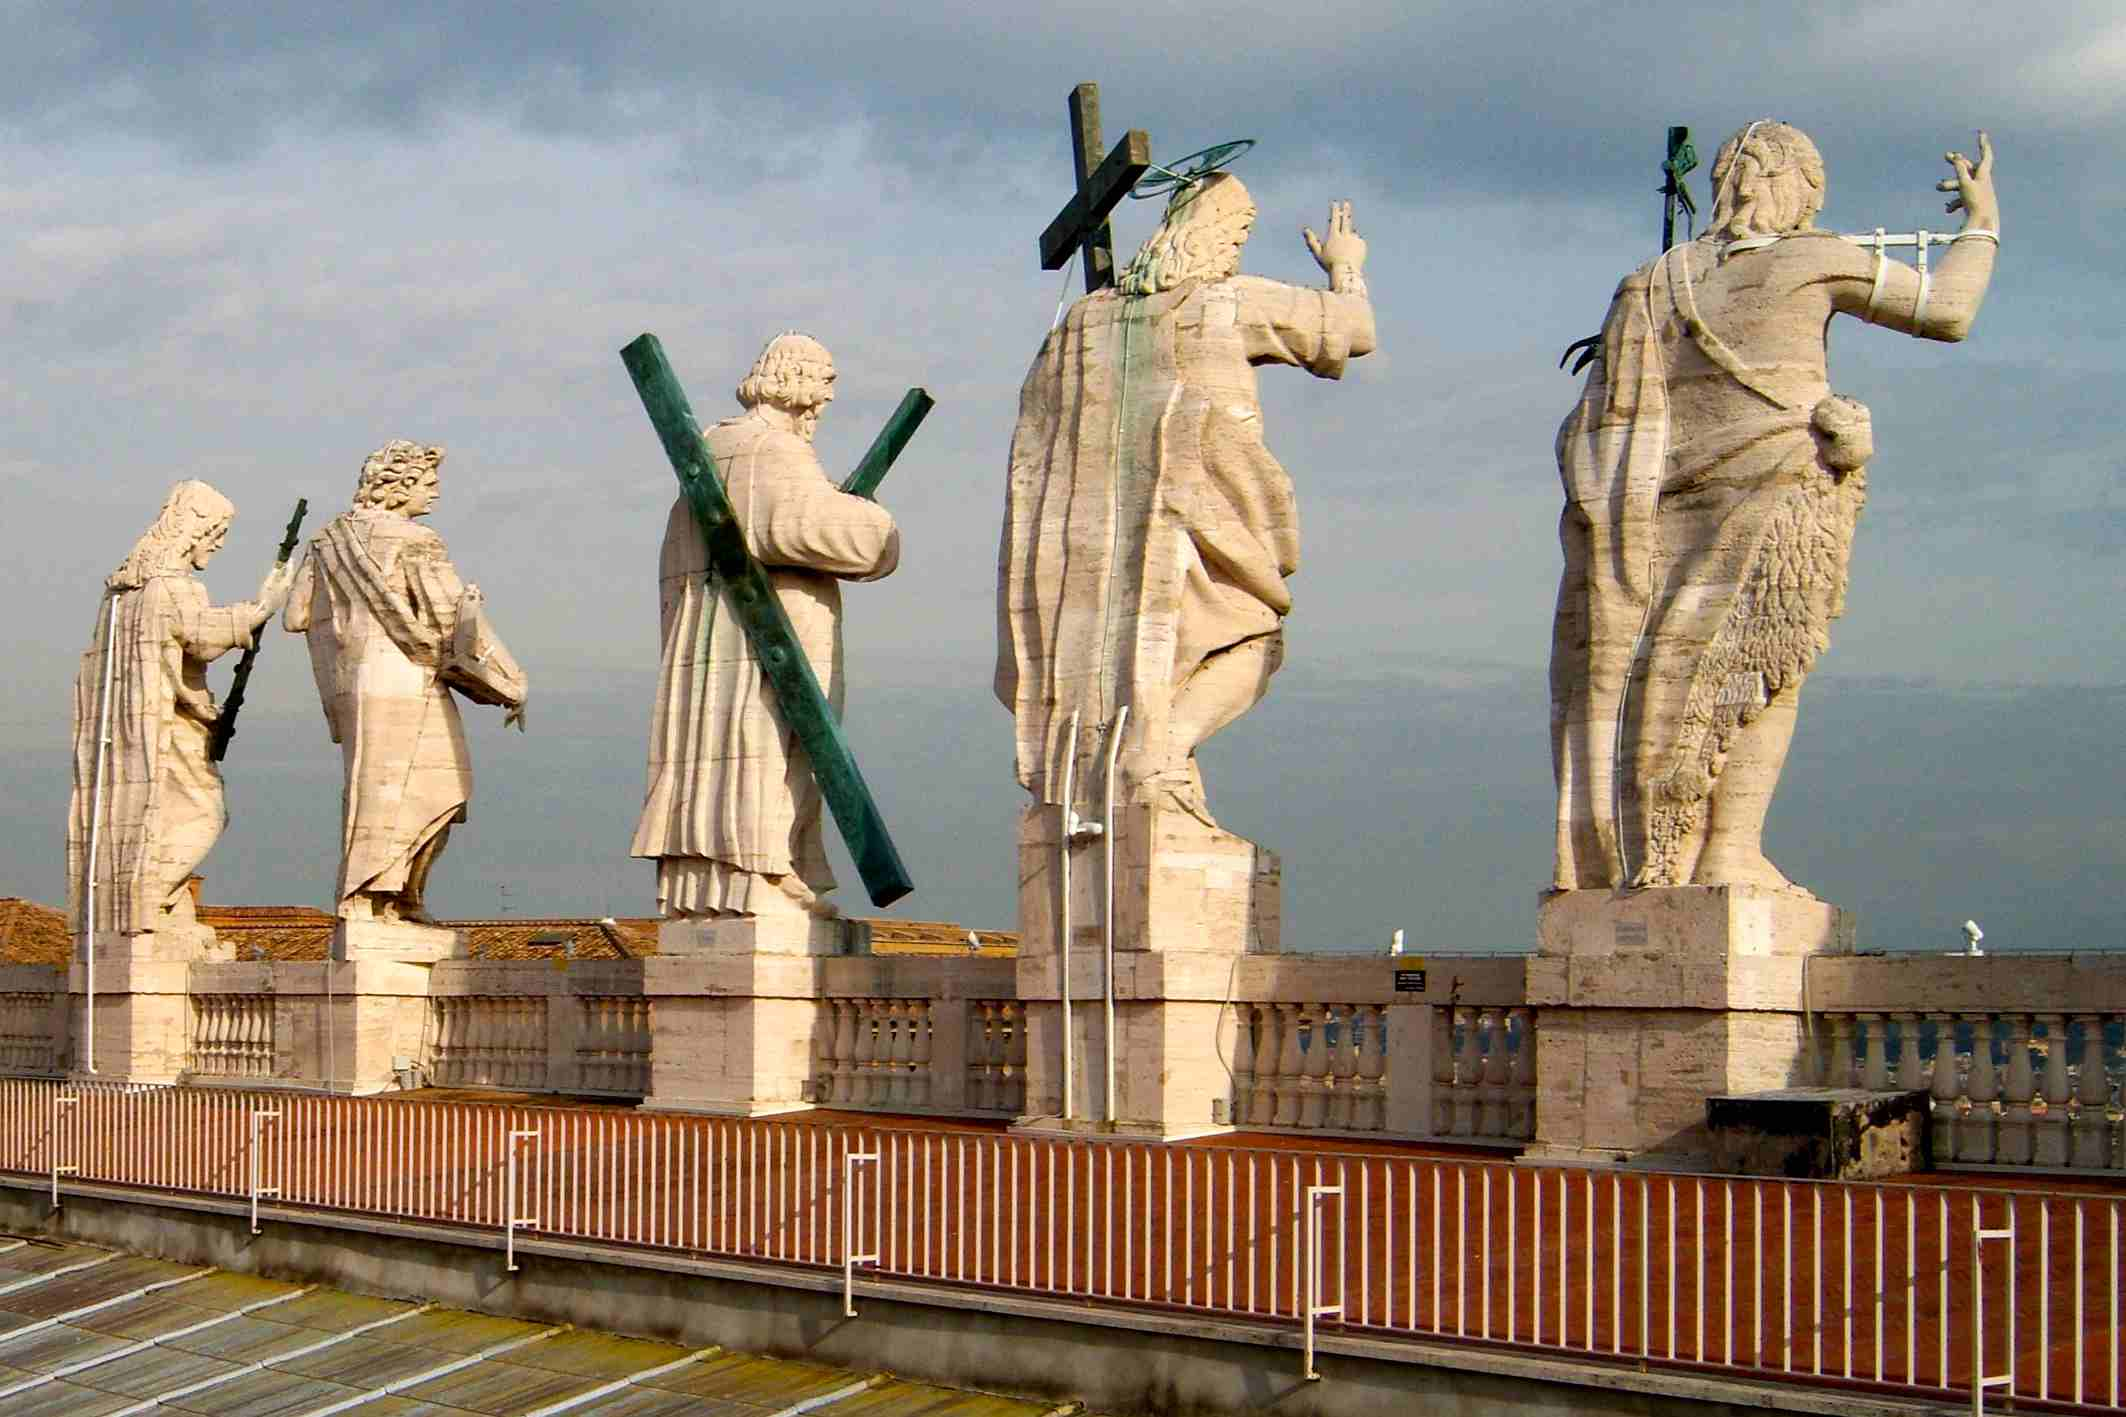 Statues of the Apostles, Jesus Christ, and John the Baptist on the façade of Saint Peter's Basilica,